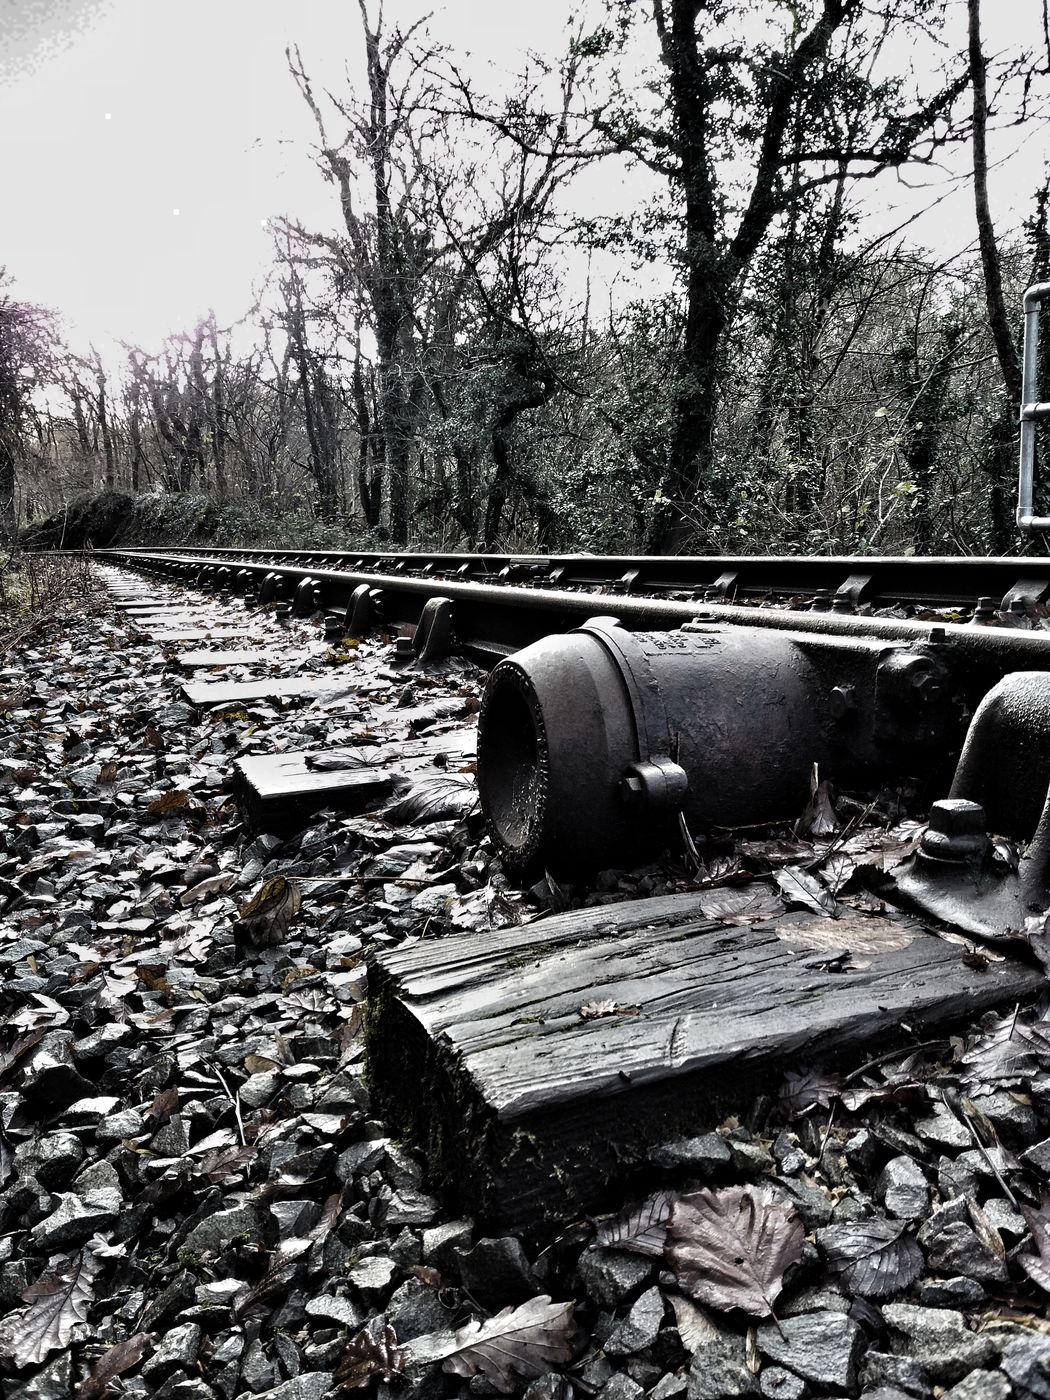 Metal Outdoors Close-up No People Amateur Photography EyeEm Best Shots EyeEm Gallery Eye For Photography Motion Railway Track Sleeper Wood Traintracks Abandoned & Derelict Abandoned Railroad Track